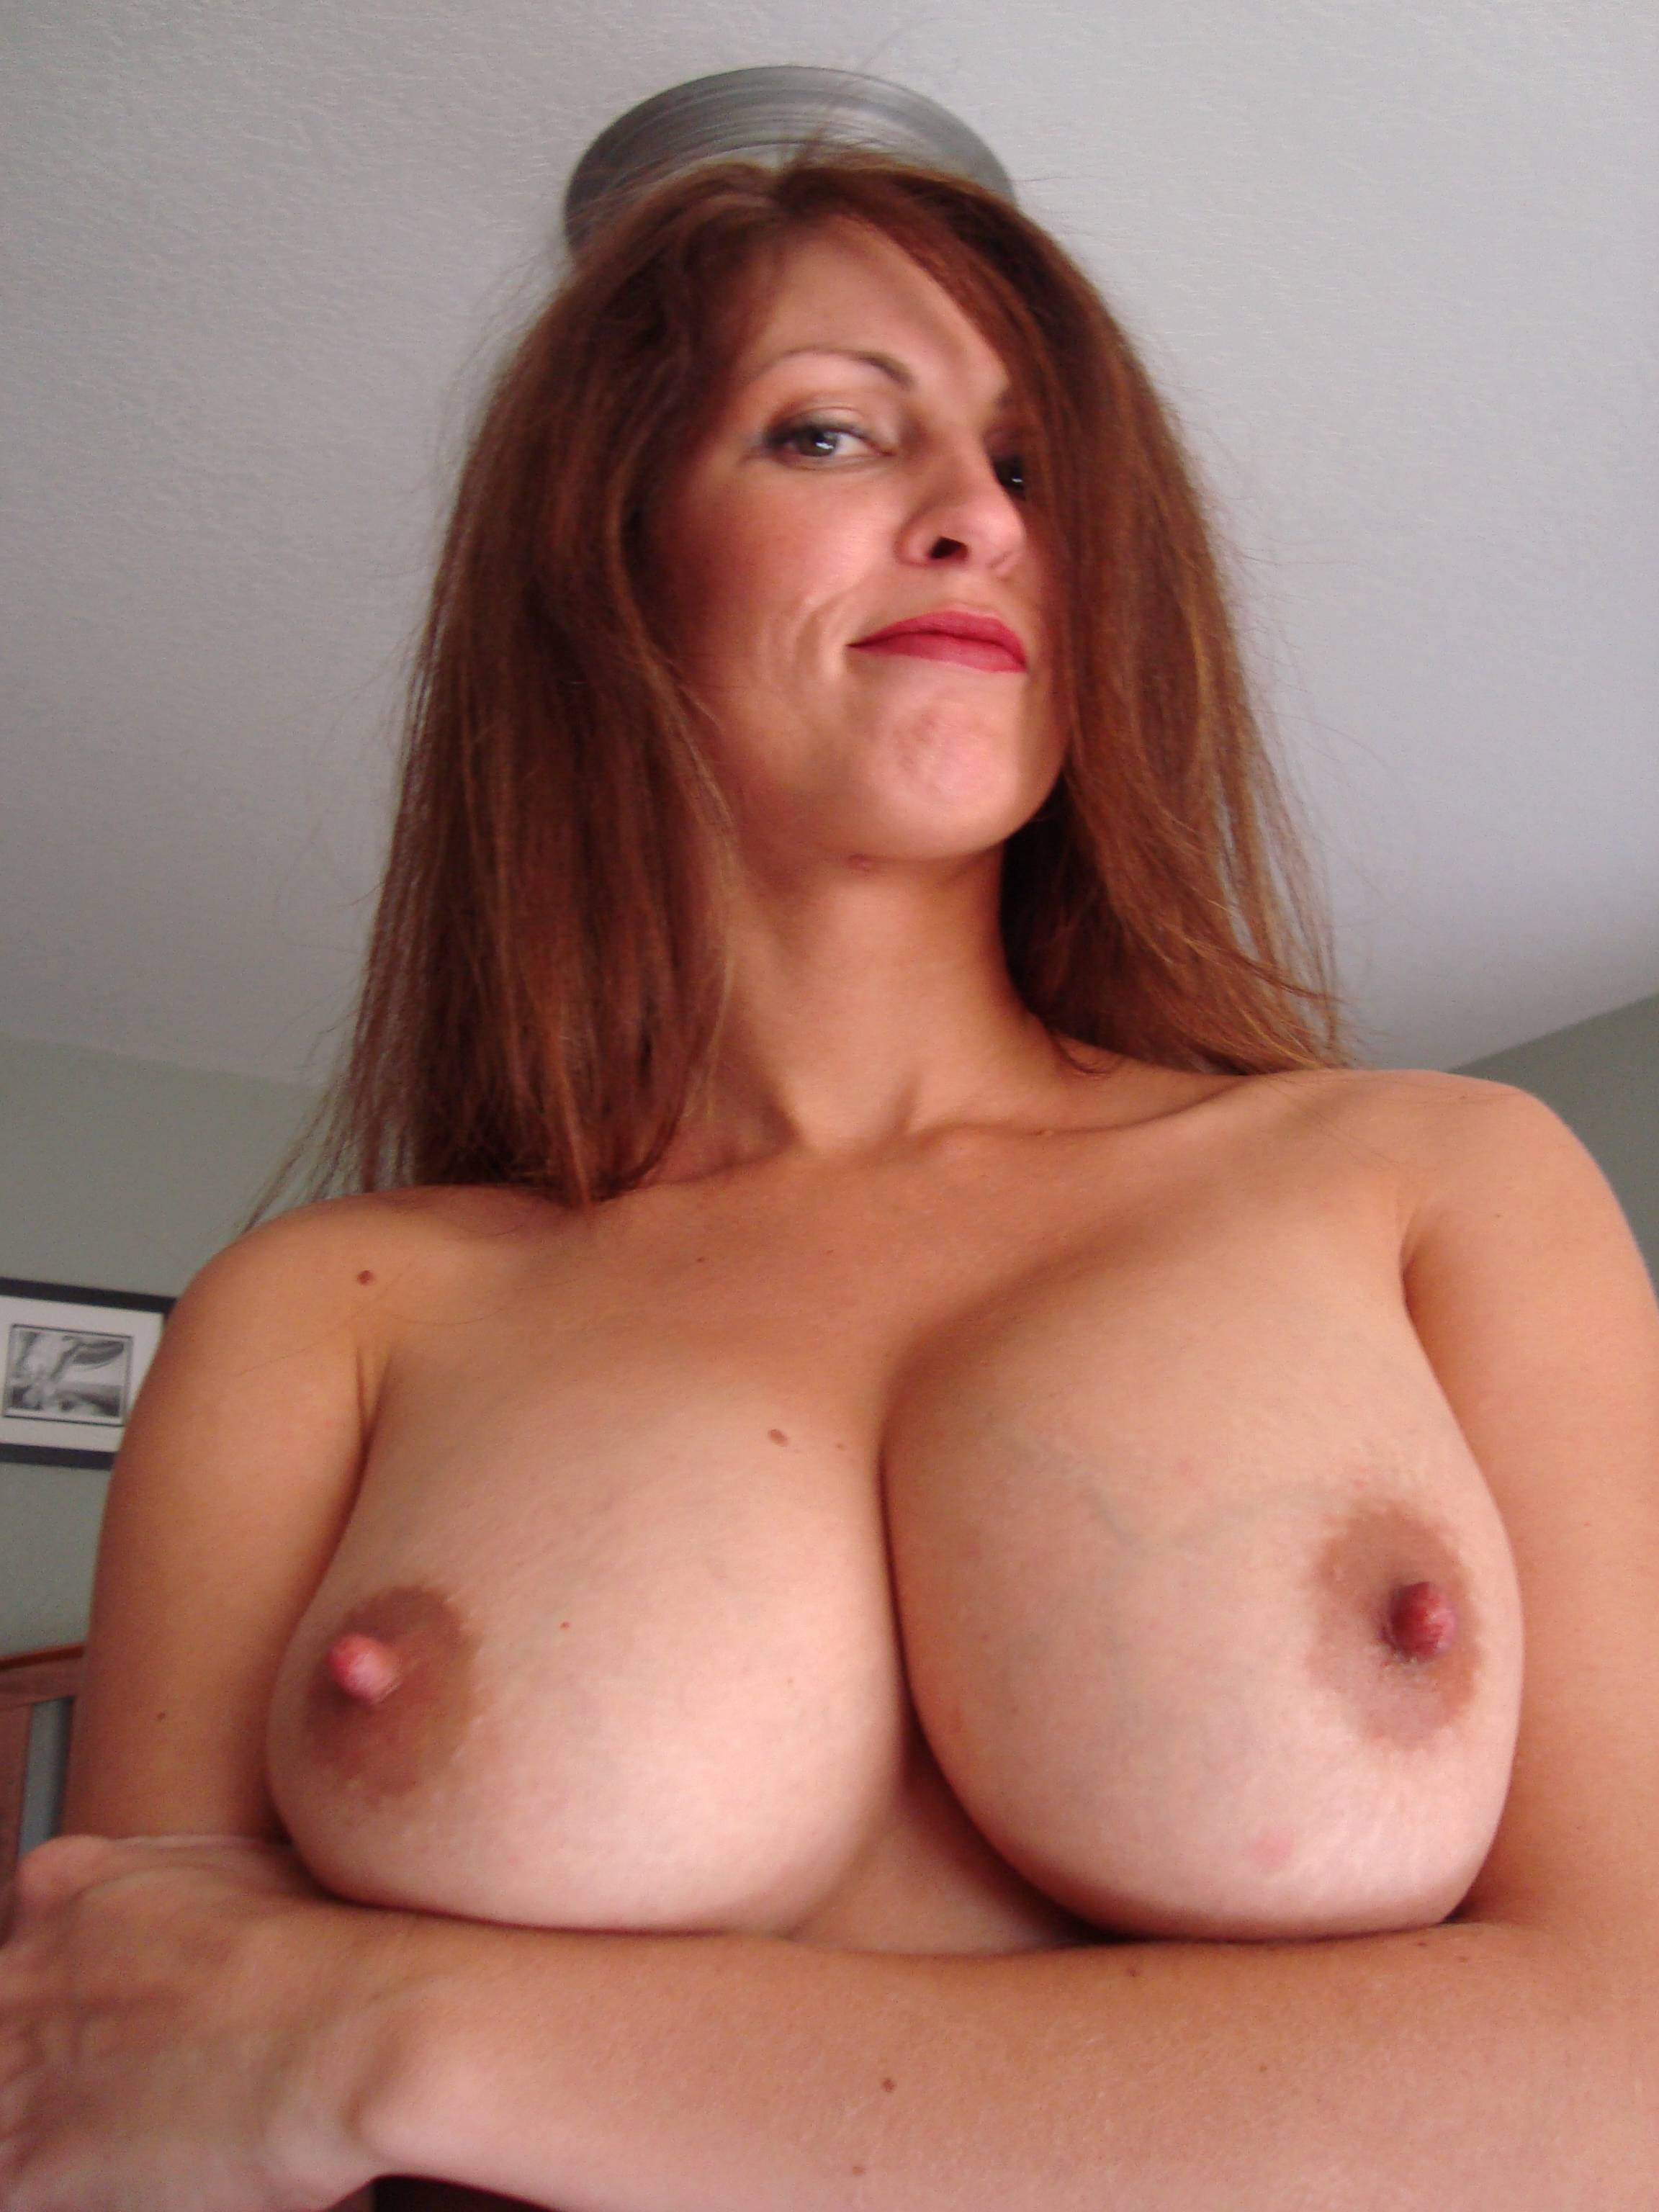 with breasts mature woman naked small